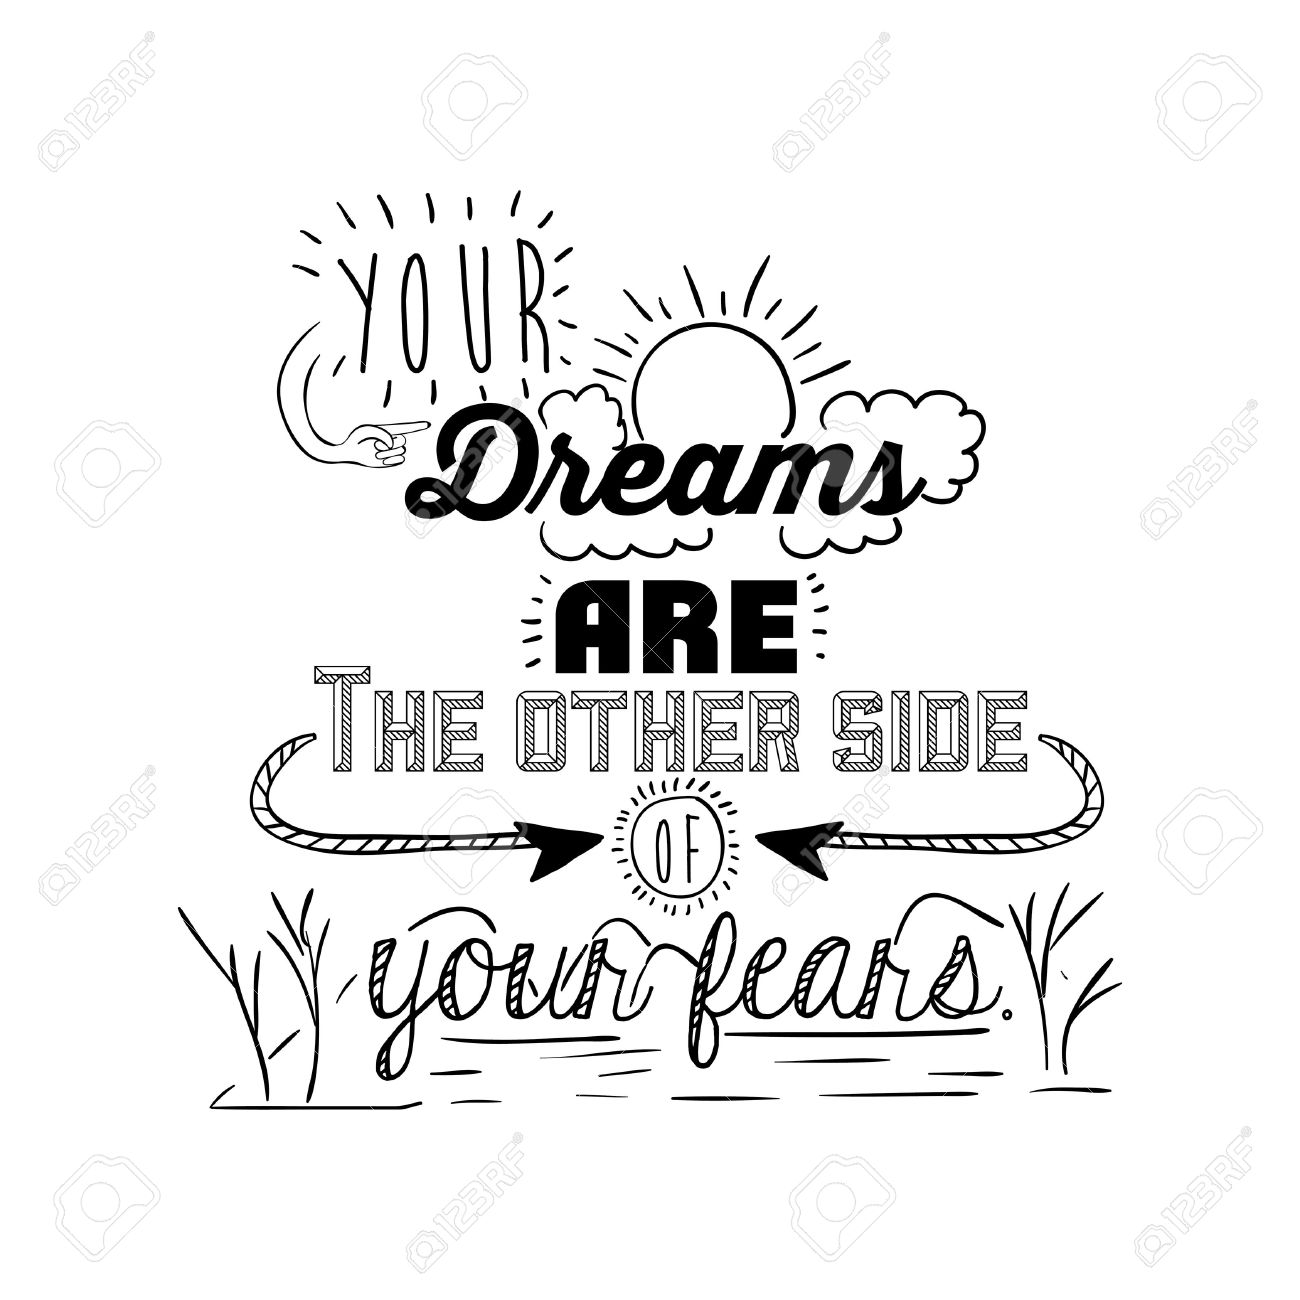 encourage quotes design, over white background, vector illustration - 42123864